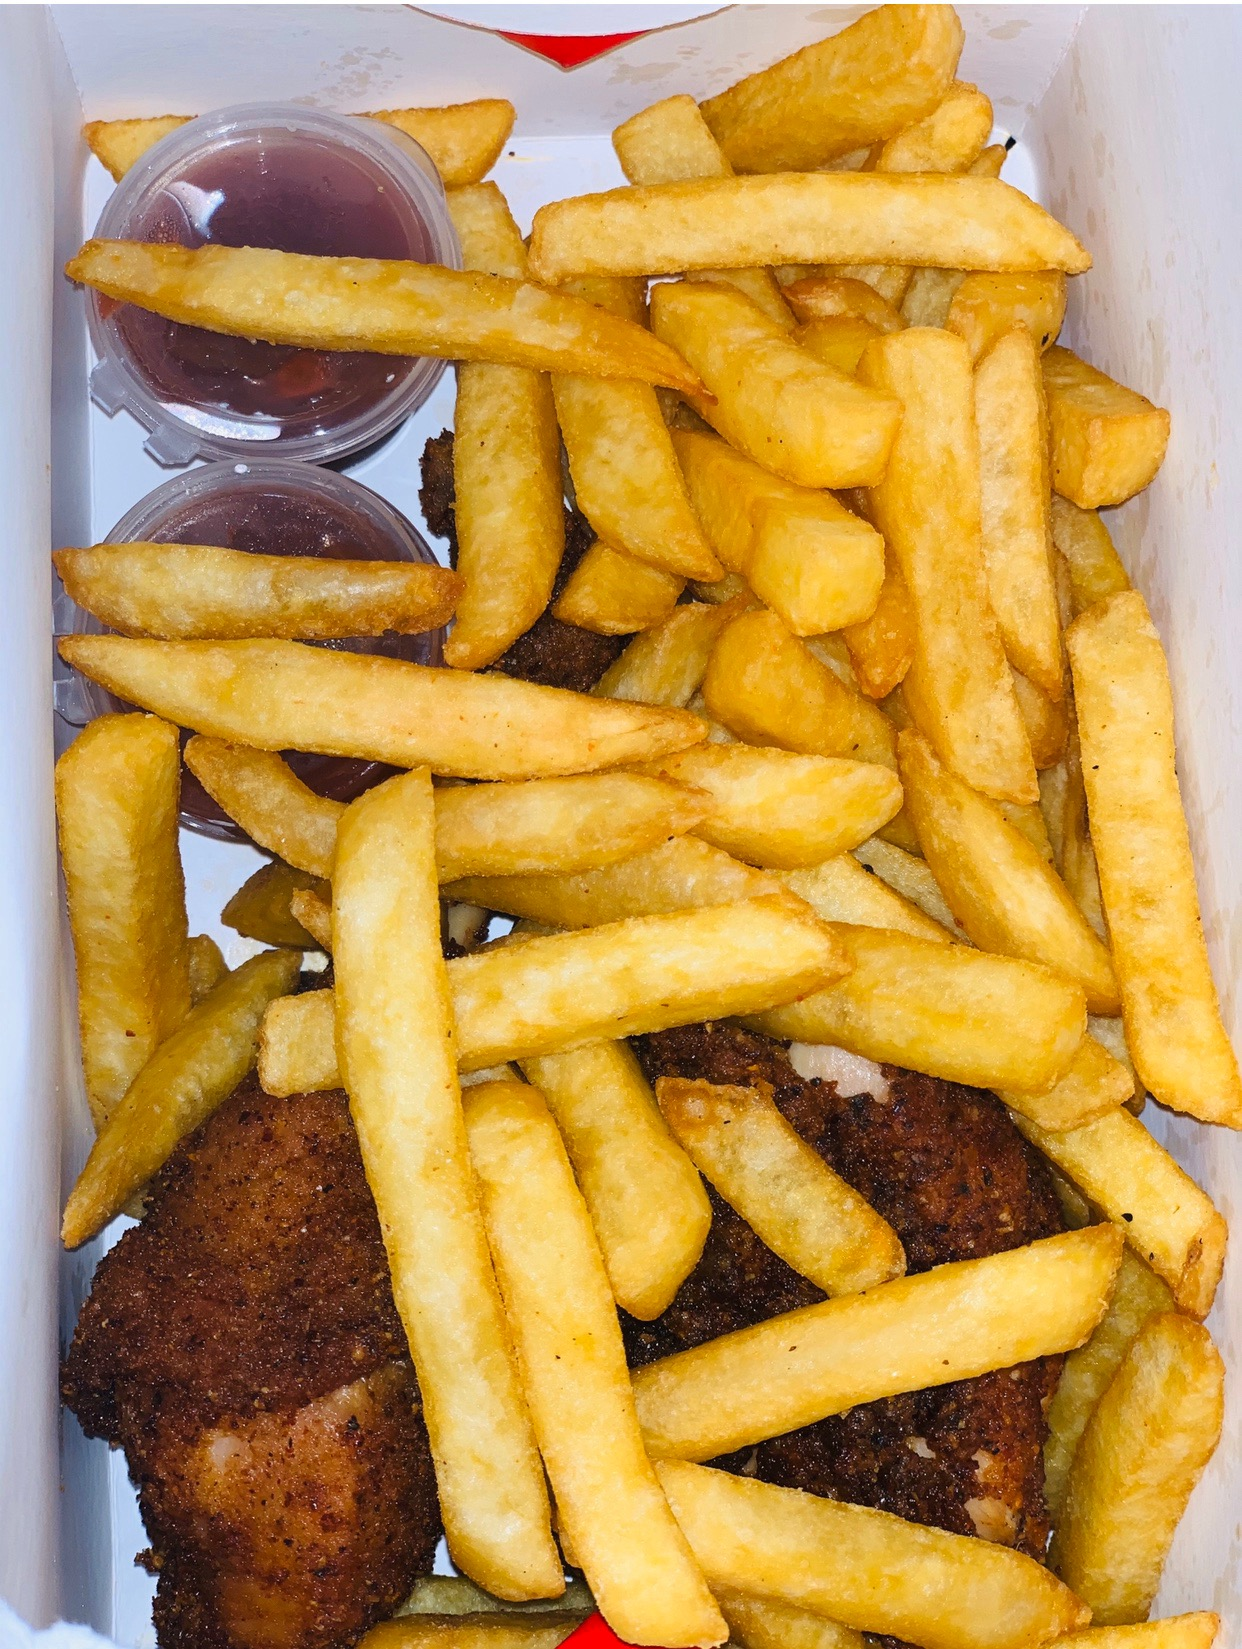 #cookingrecipehq  fried potatoes chips with roasted chicken and ketchup🔥🔥😋